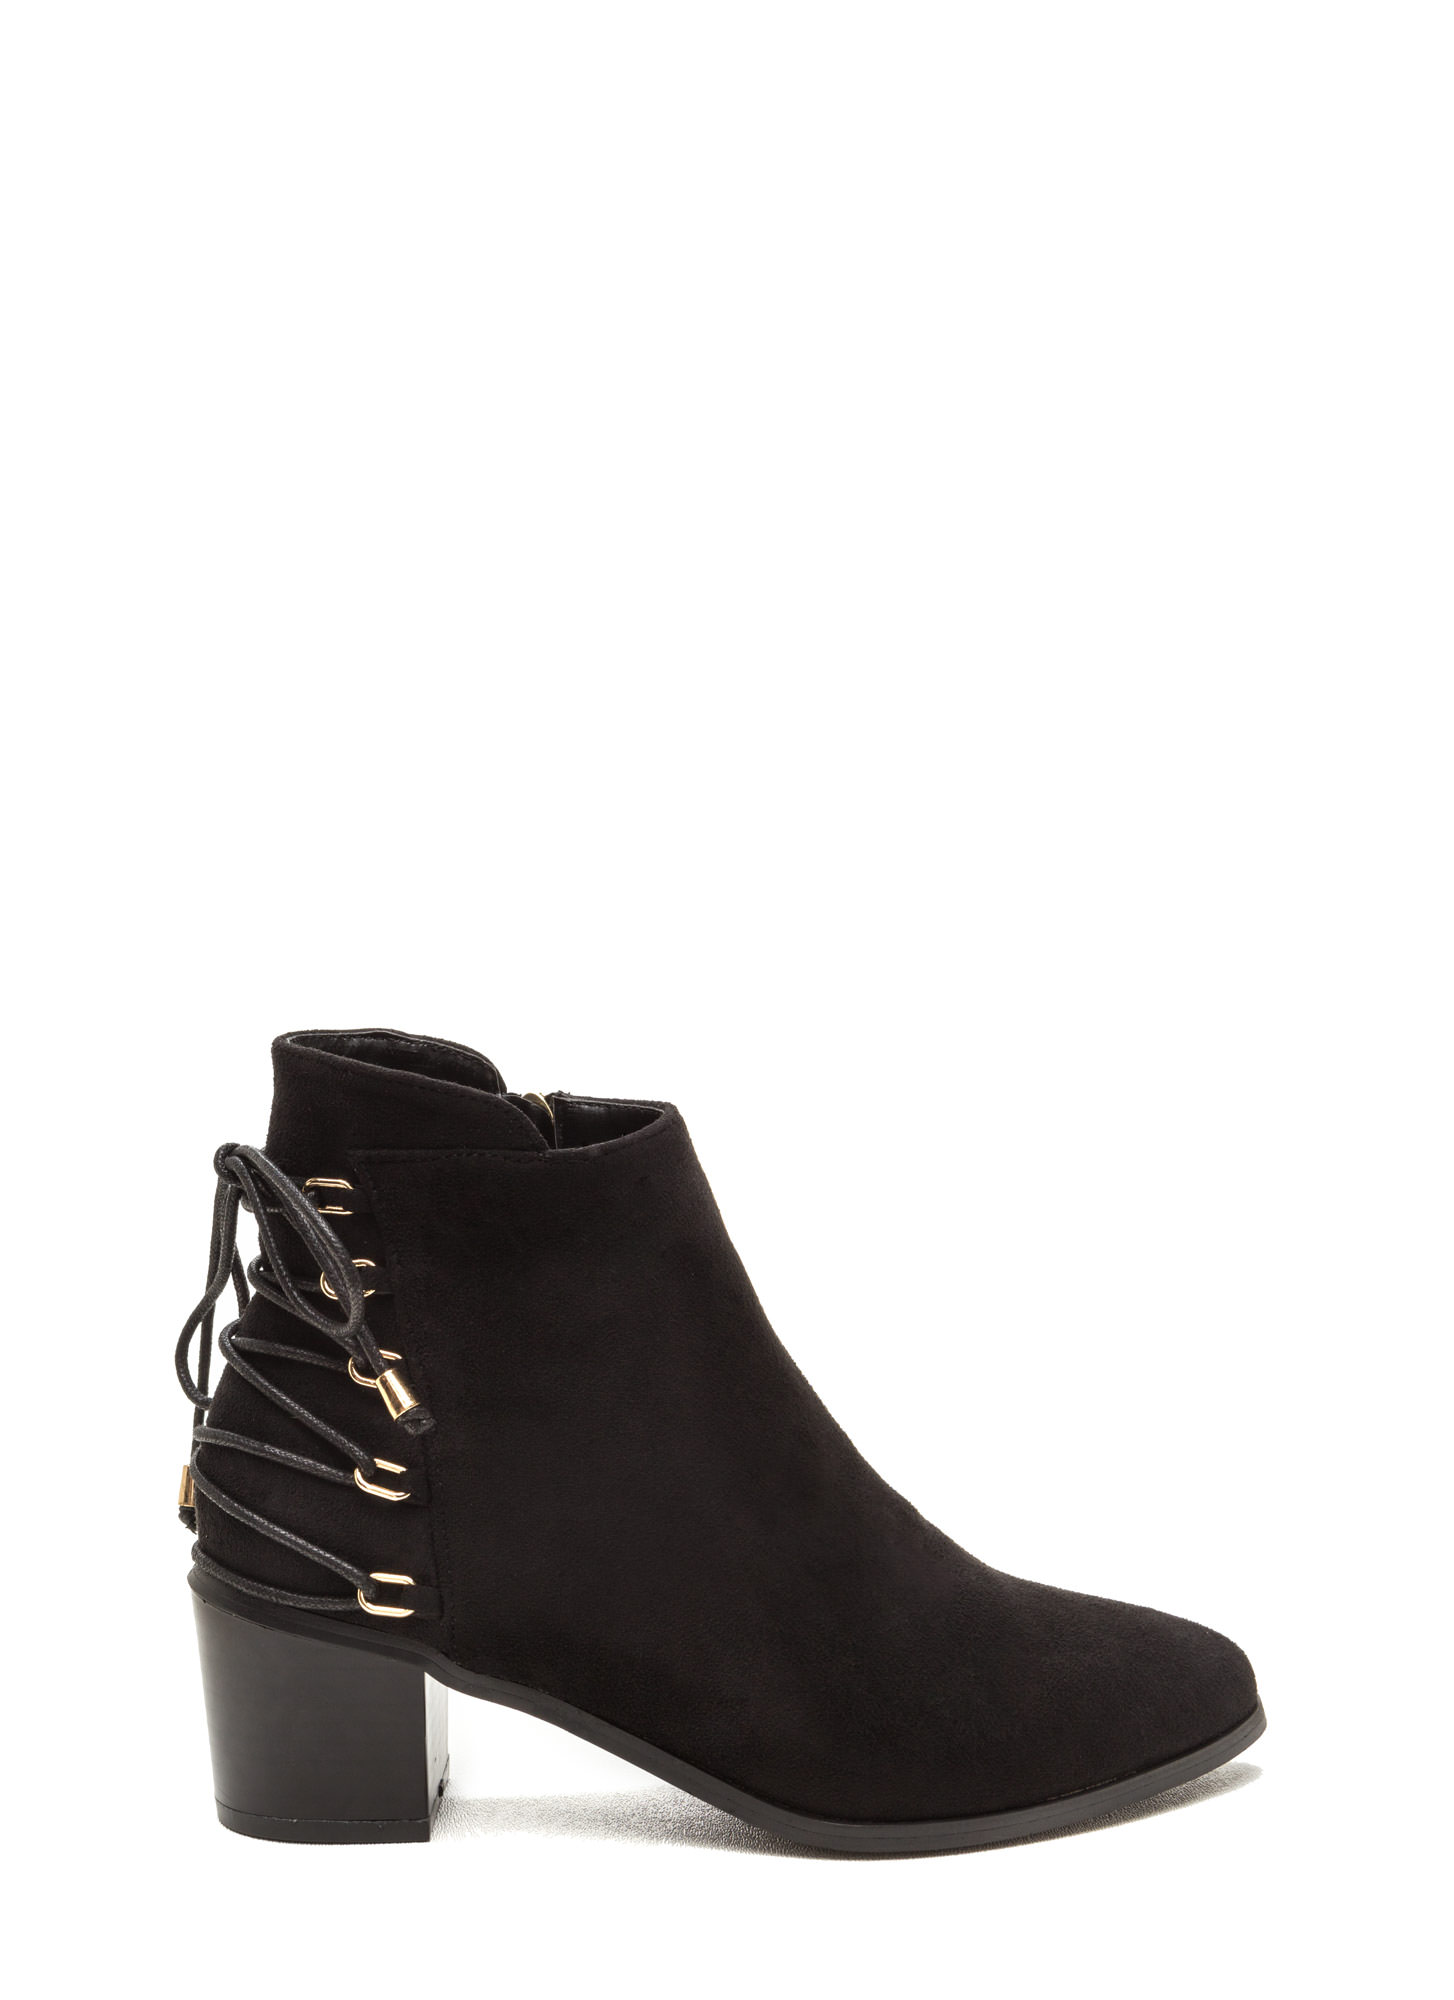 Ring Leader Lace-Up Chunky Booties BLACK